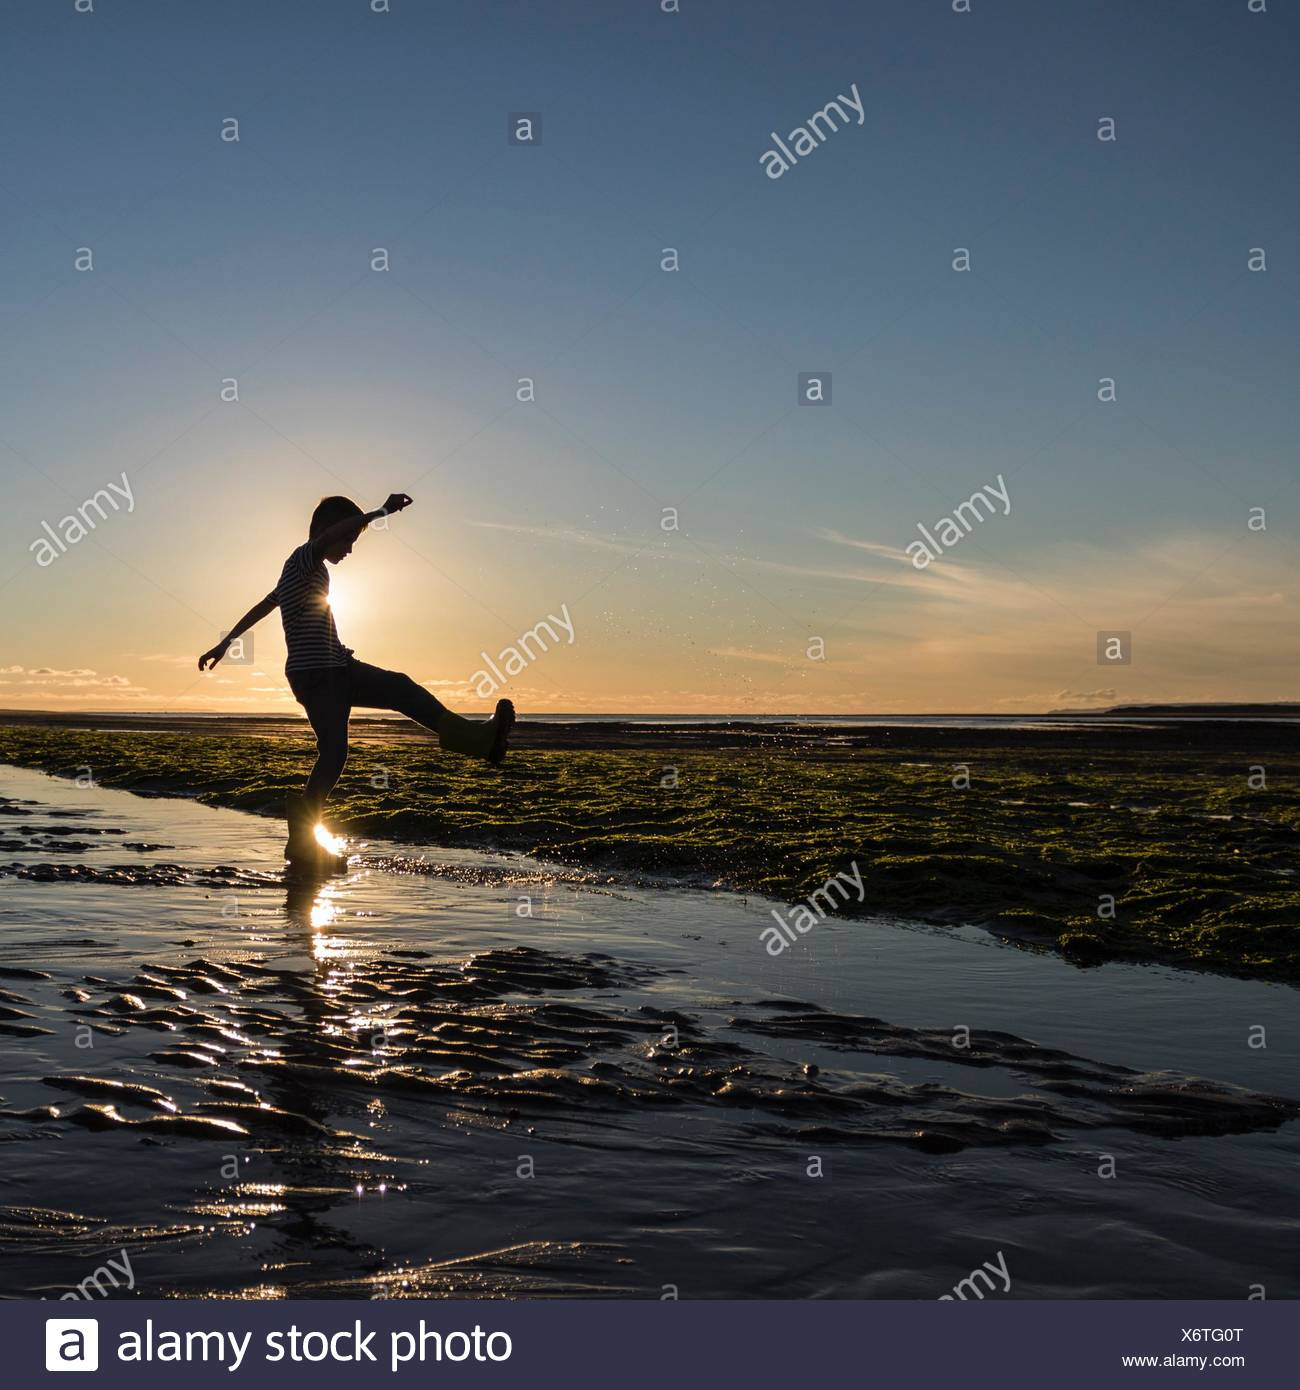 Silhouette of a boy kicking water at the beach - Stock Image